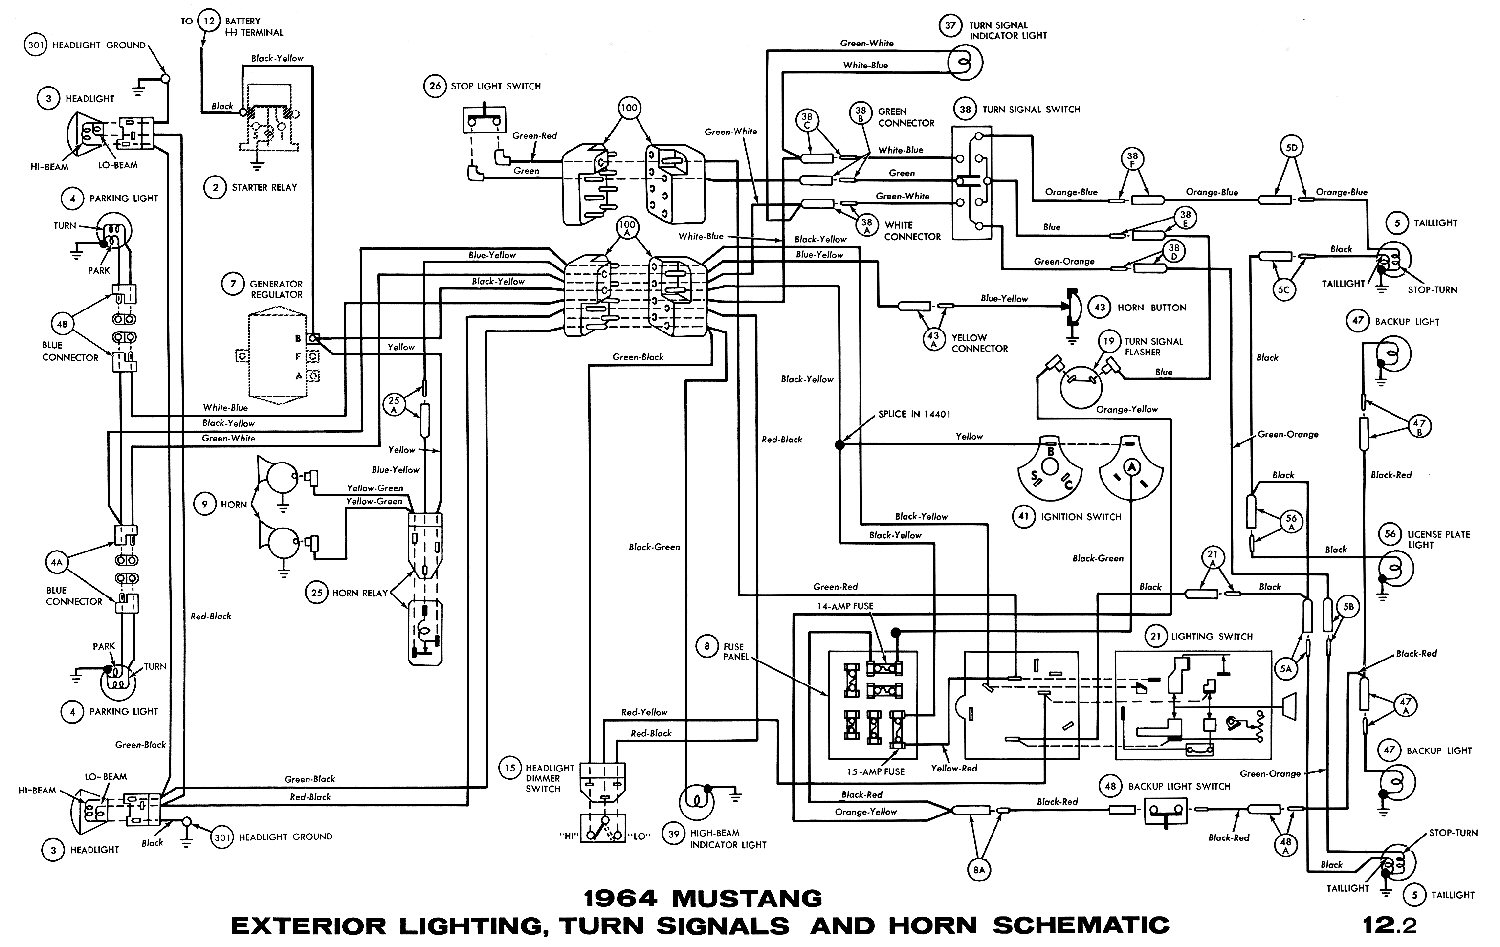 1964i 1964 mustang wiring diagrams average joe restoration 1966 mustang fuse box diagram at bayanpartner.co